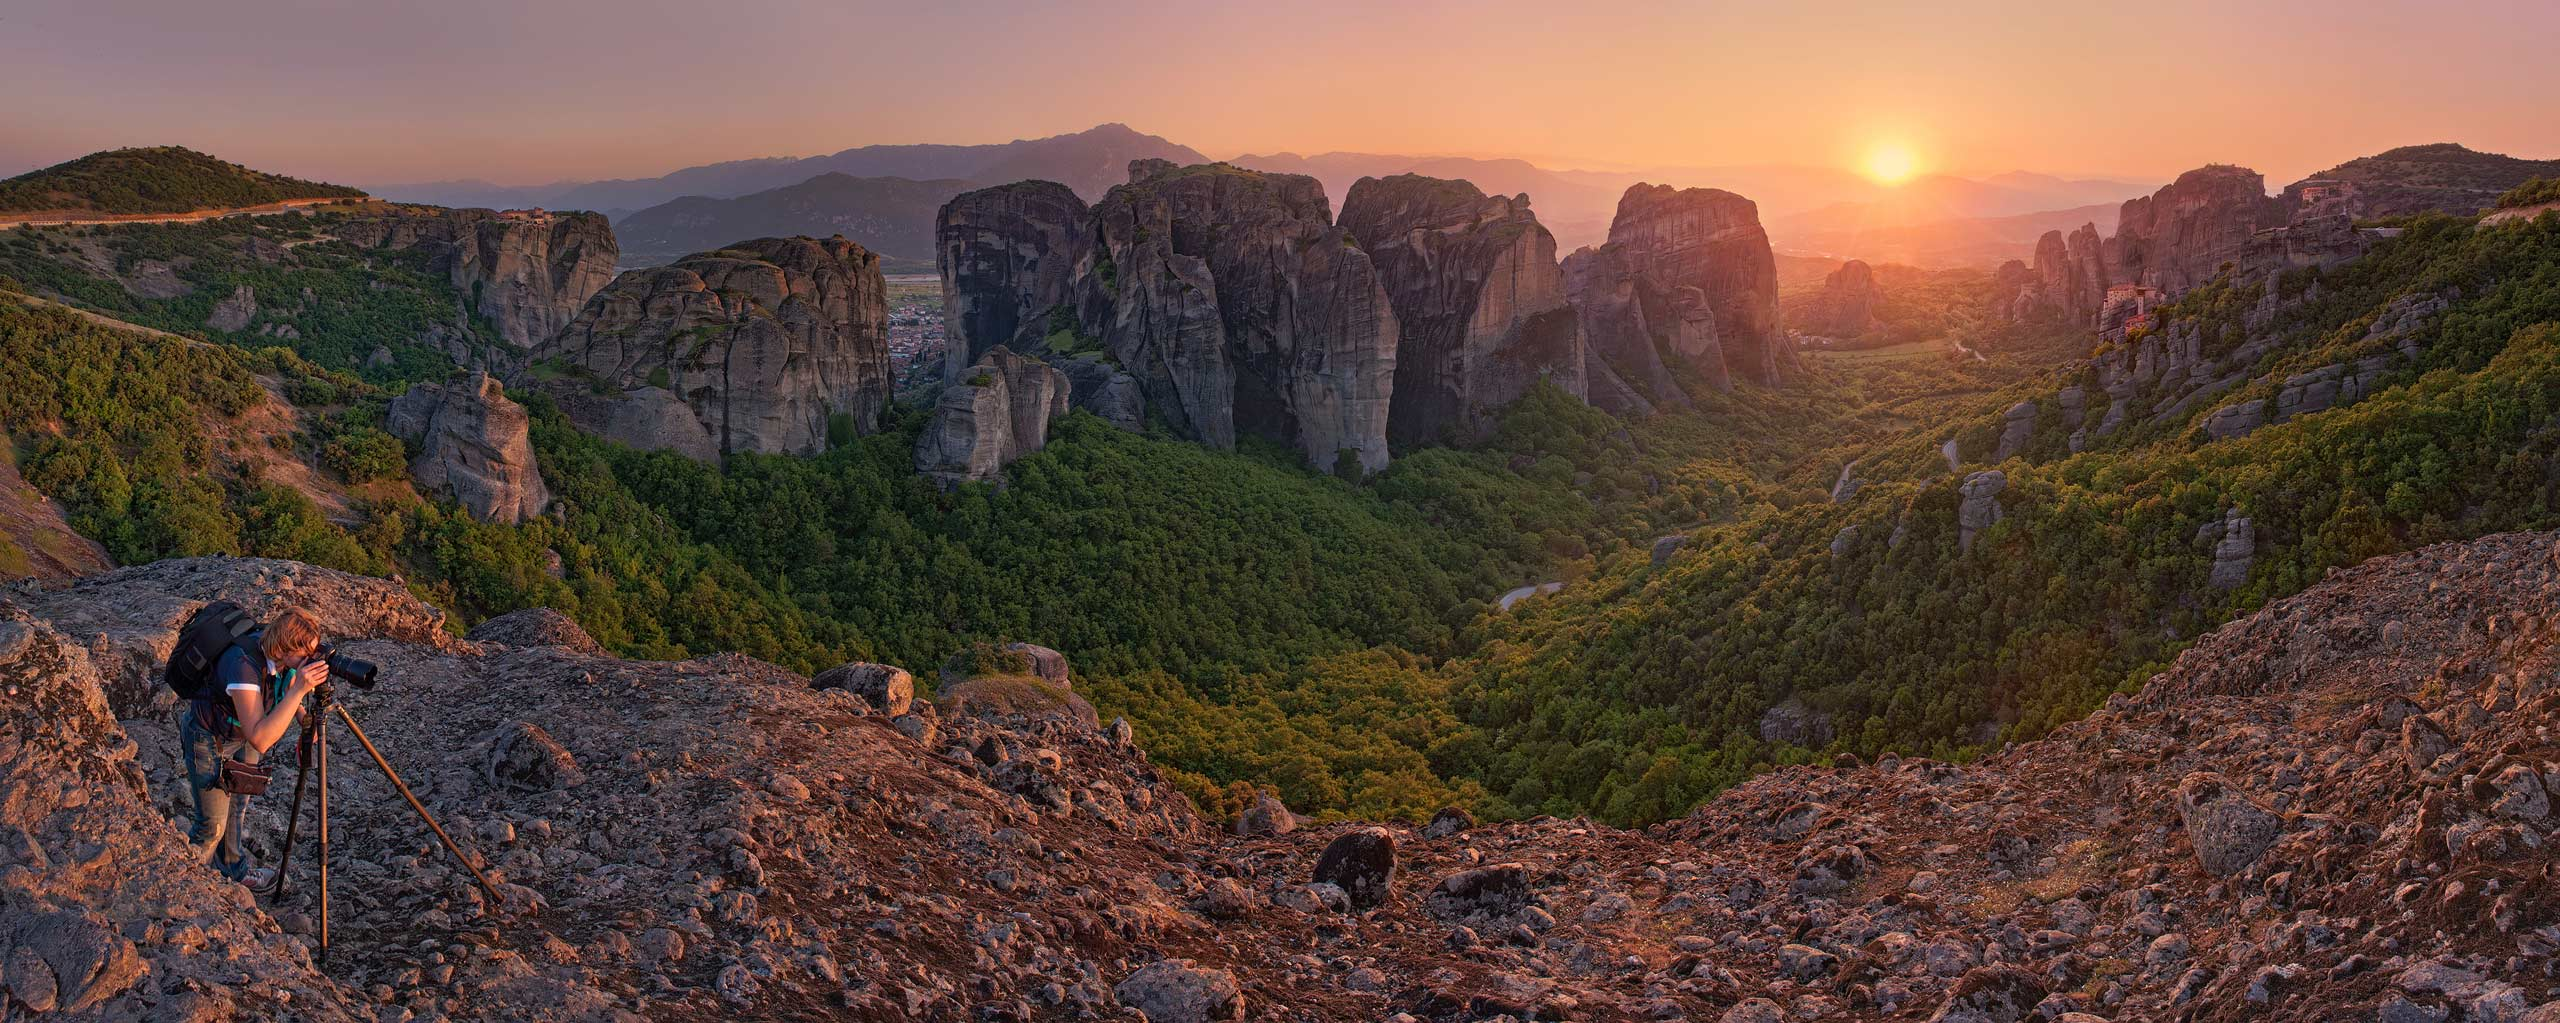 Photographing sunset at Meteora, Thessaly, Greece - Meteora-Monasteries-Greece - Mike Reyfman Photography